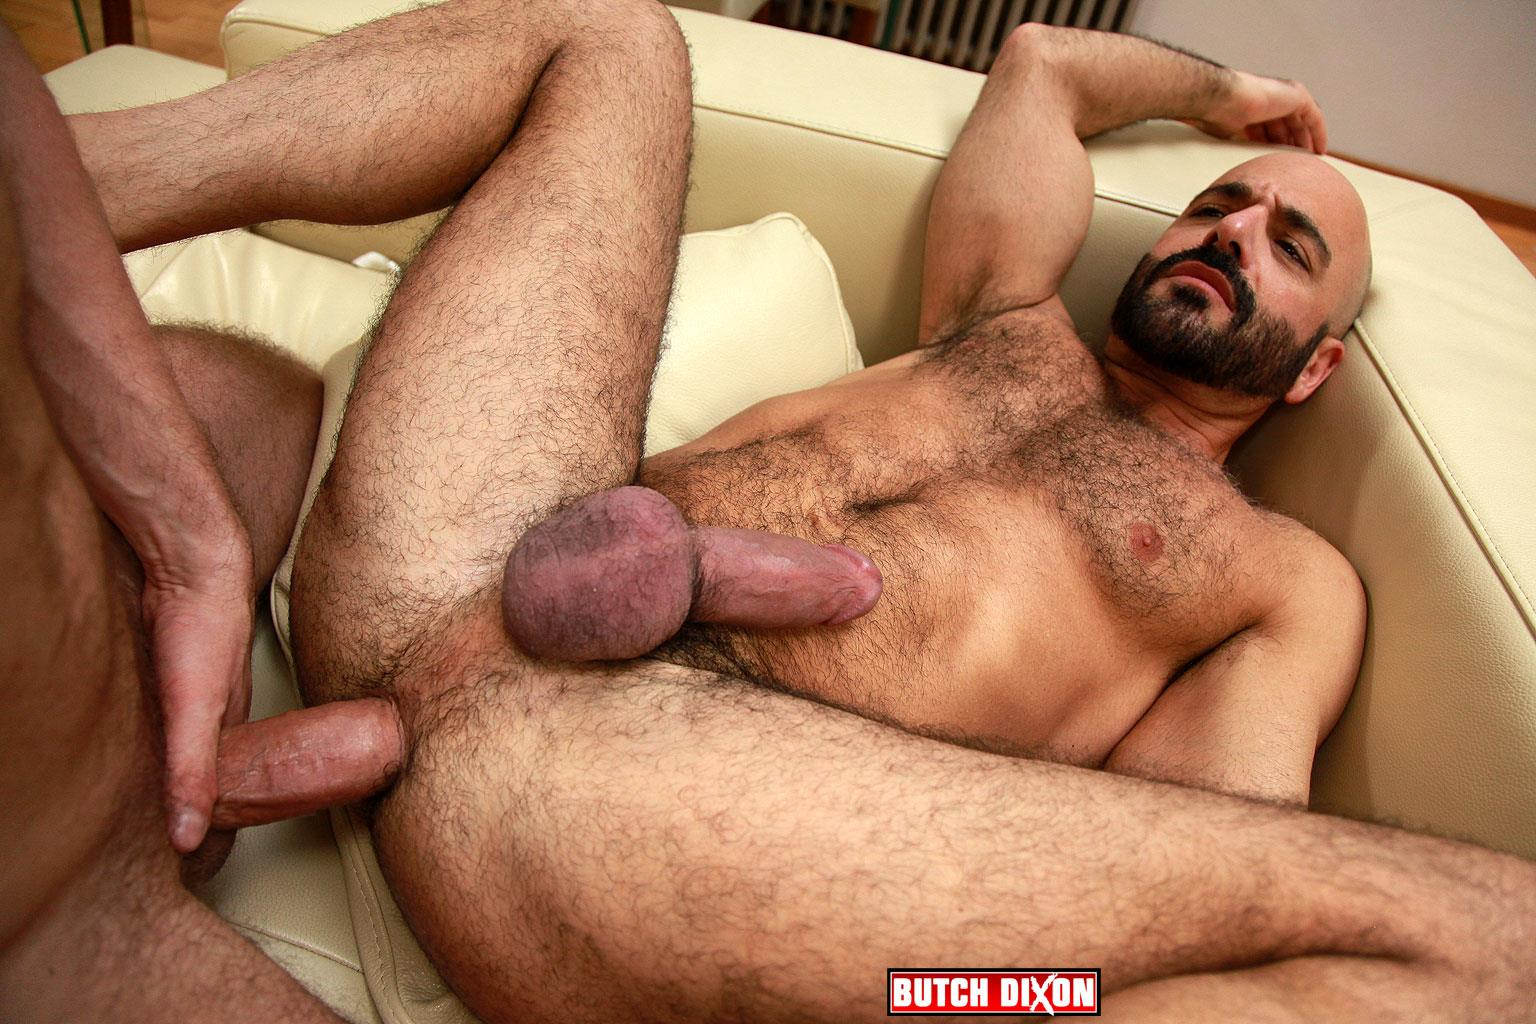 Butch-Dixon-Adam-Russo-and-Adam-Dacre-Getting-Fucked-By-A-Big-Uncut-Cock-Amateur-Gay-Porn-09 Adam Russo Getting A Big Bareback Uncut Cock Up His Hairy Ass